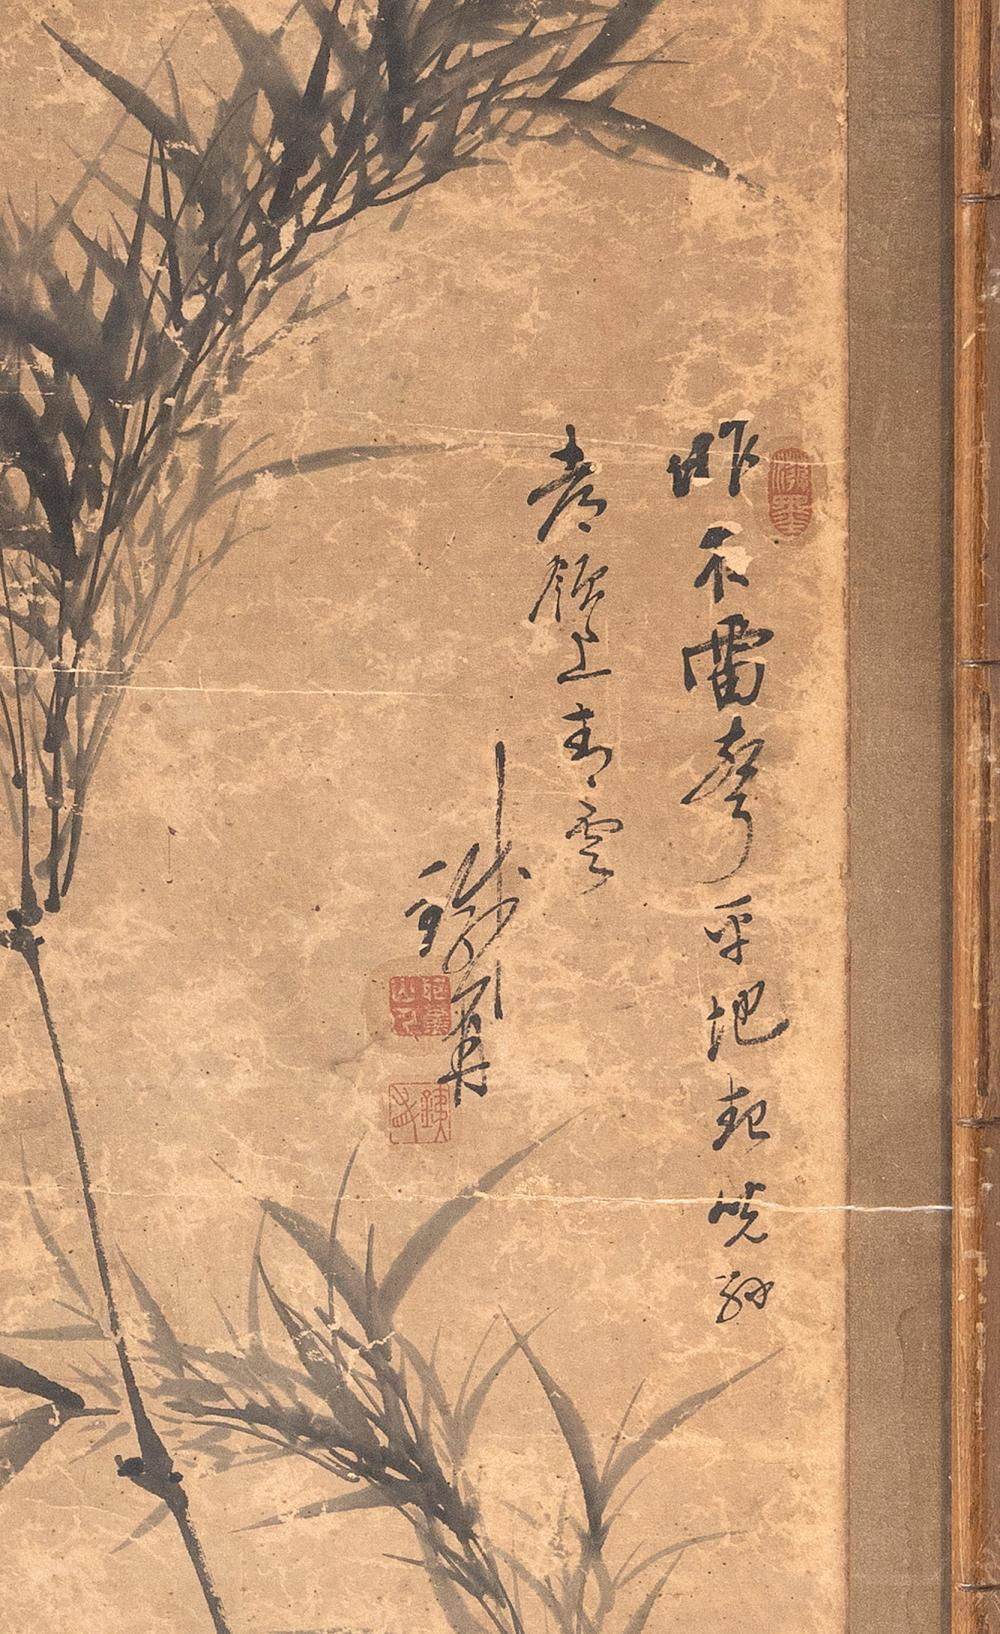 CHINESE PAINTING ON PAPER Depicts bamboo and calligraphy. Signed and seal marked. 48.5